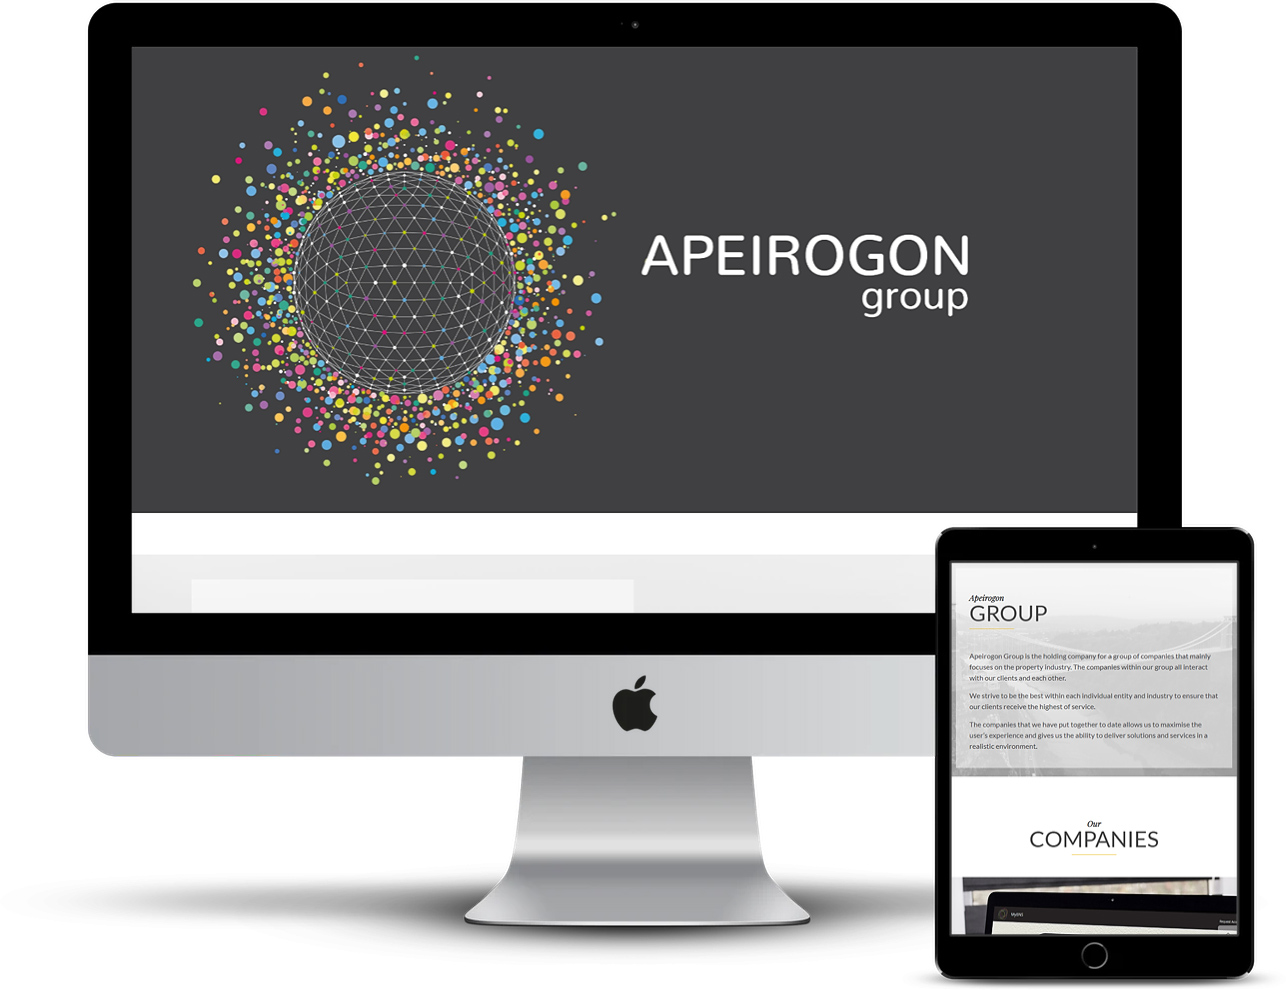 Apeirogon-Group